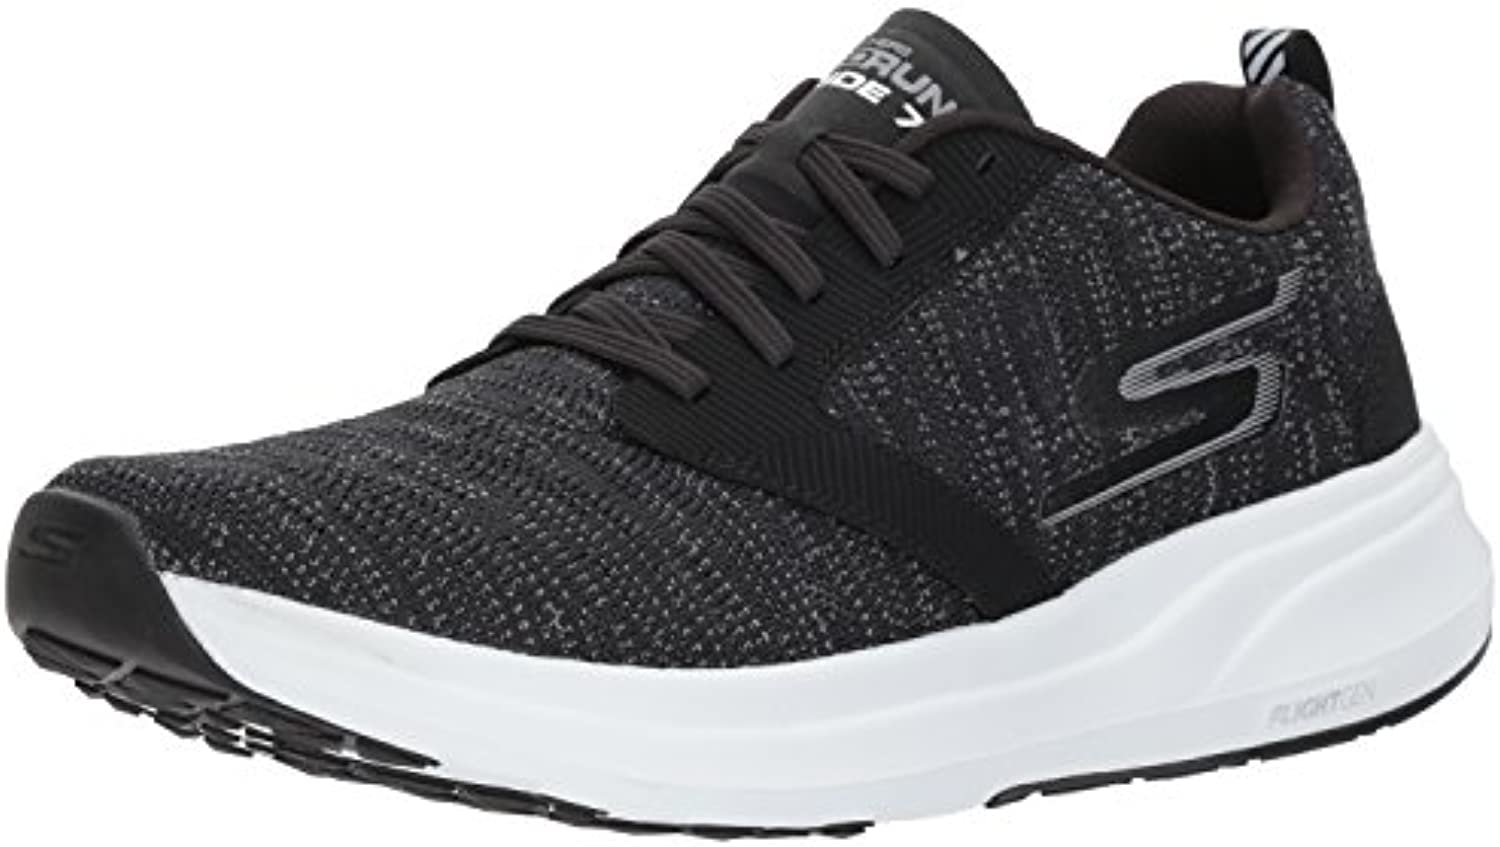 Skechers Performance Herren Go Run Ride 7 Hallenschuhe  Grau